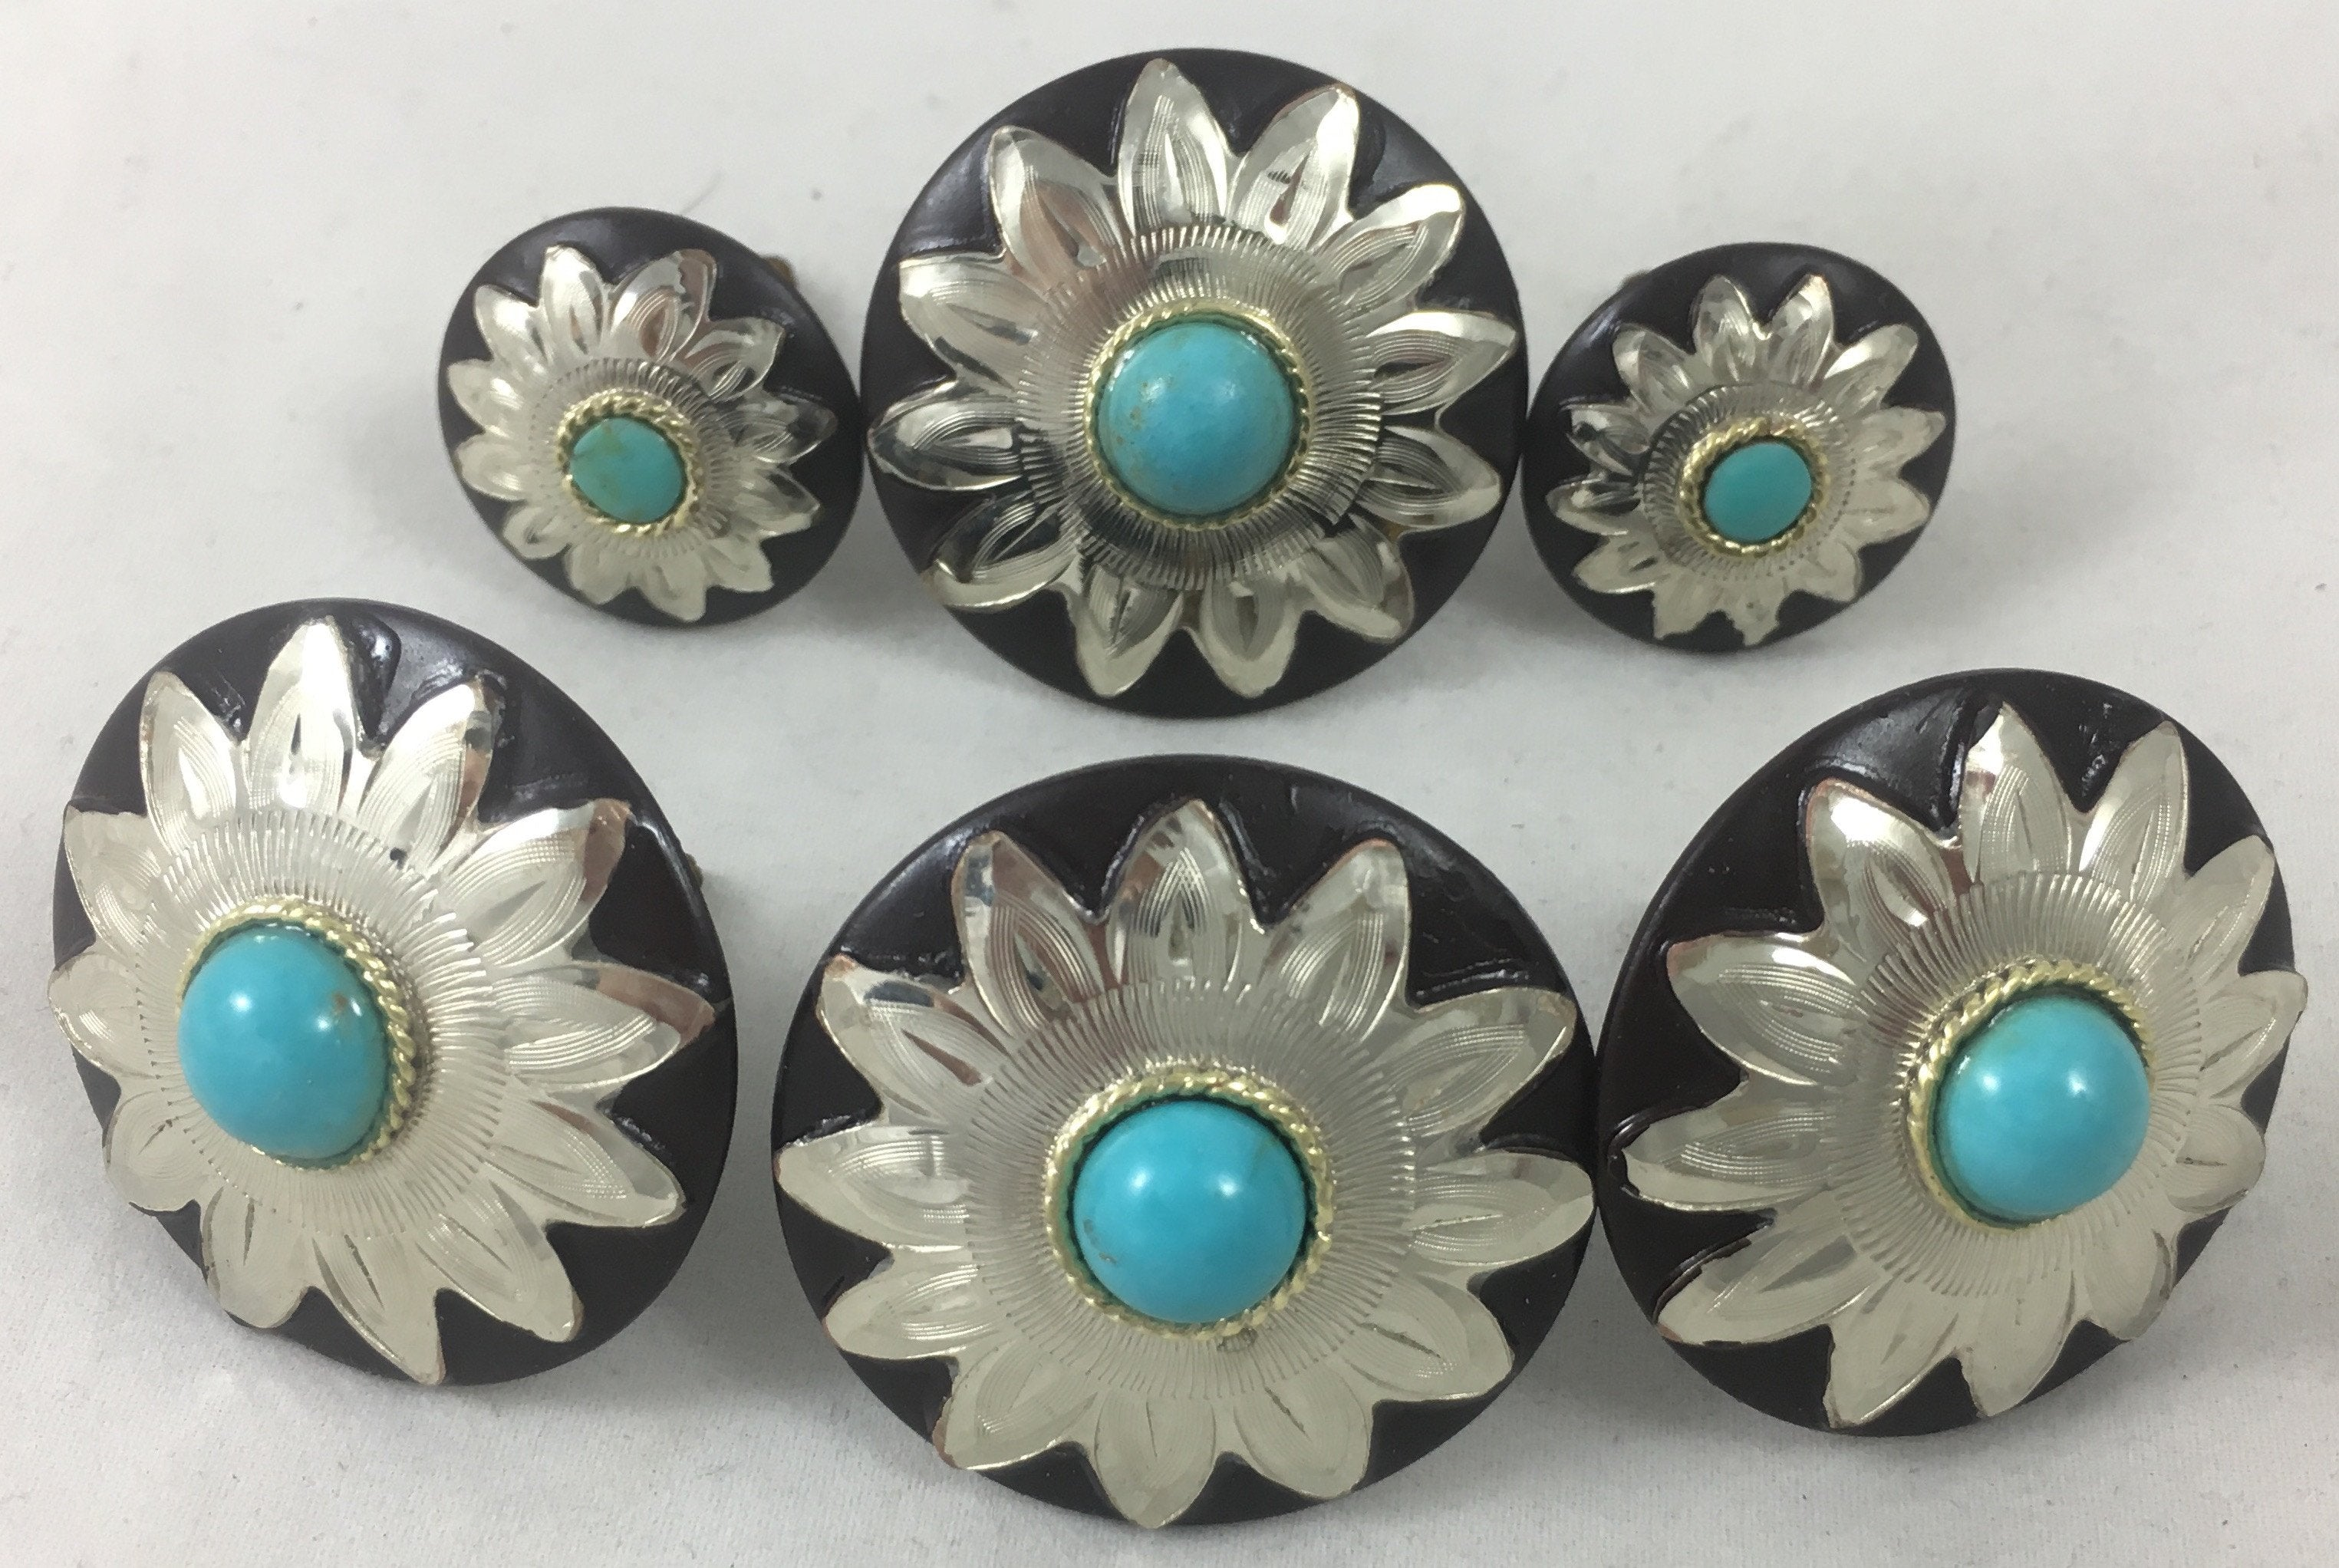 CBCONCH 109B Starburst With Turquoise Conchos